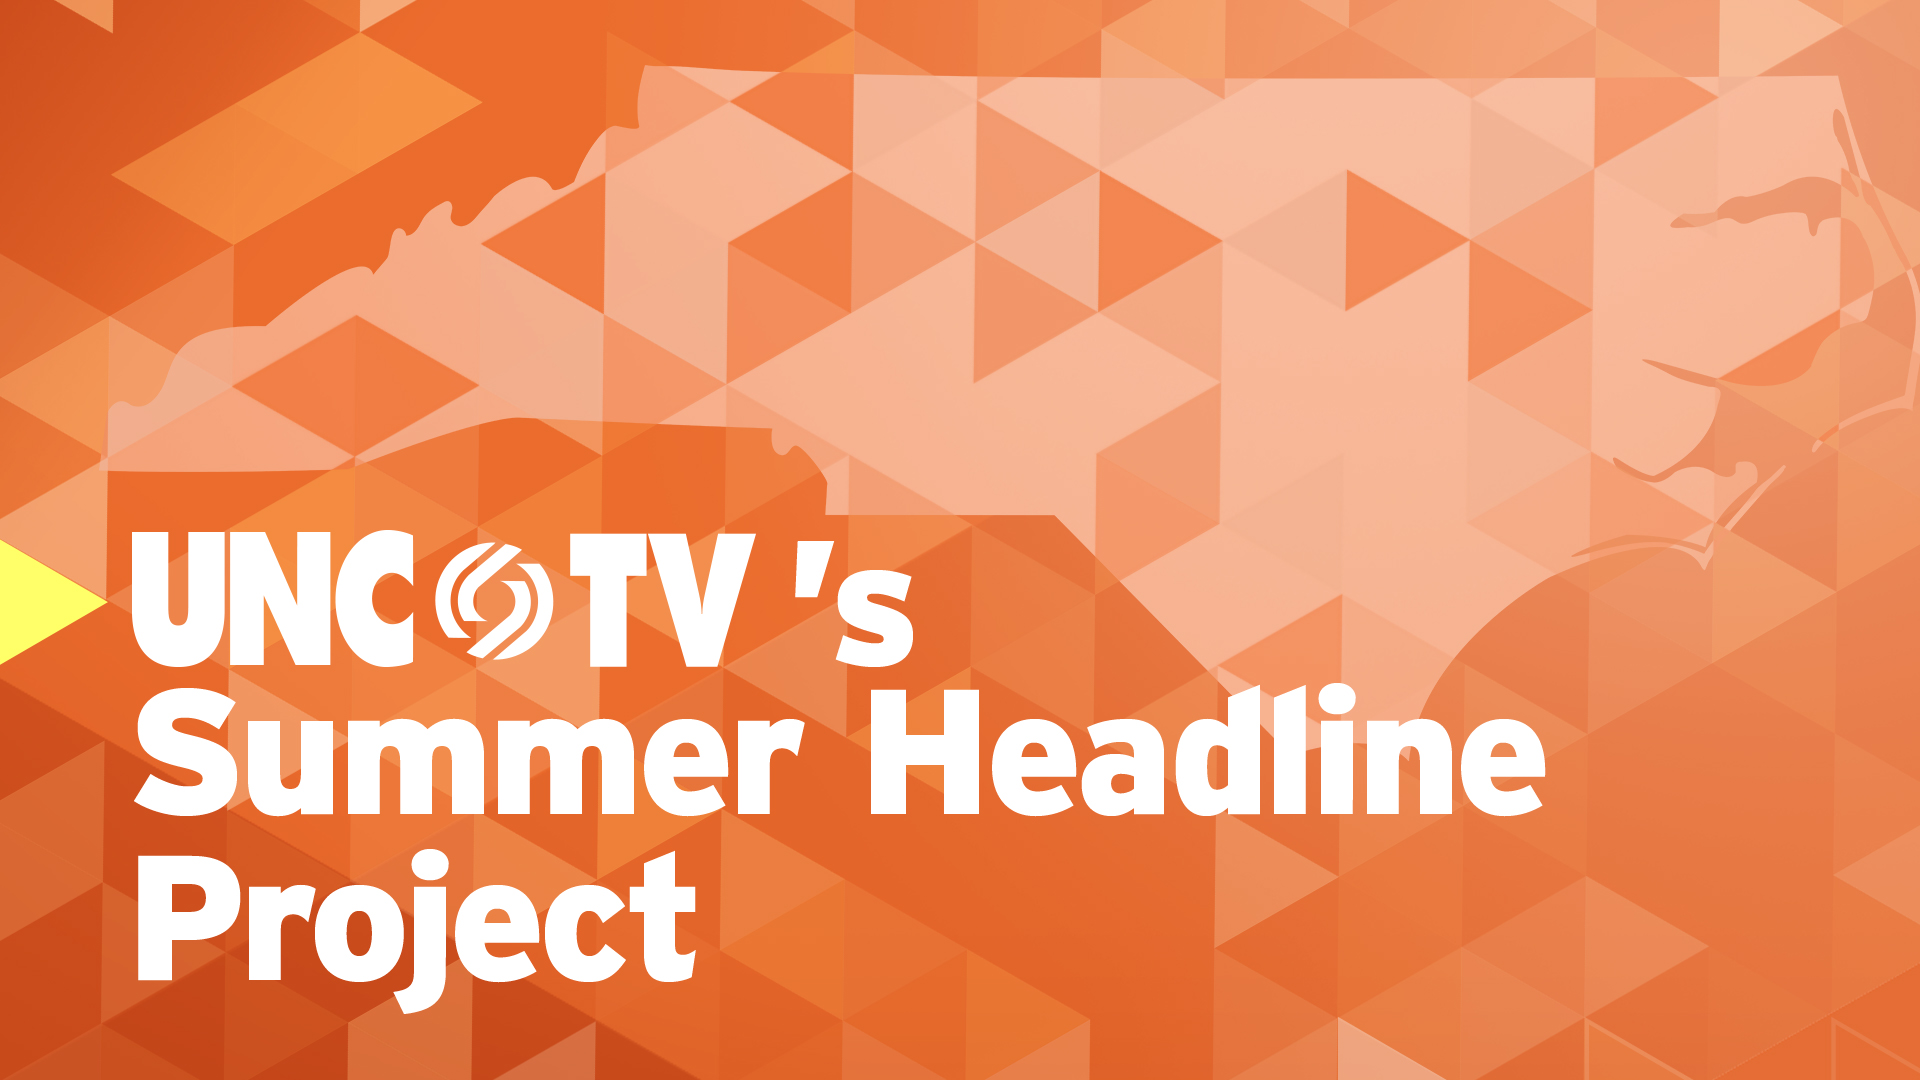 UNC-TV'S Summer Headline Project